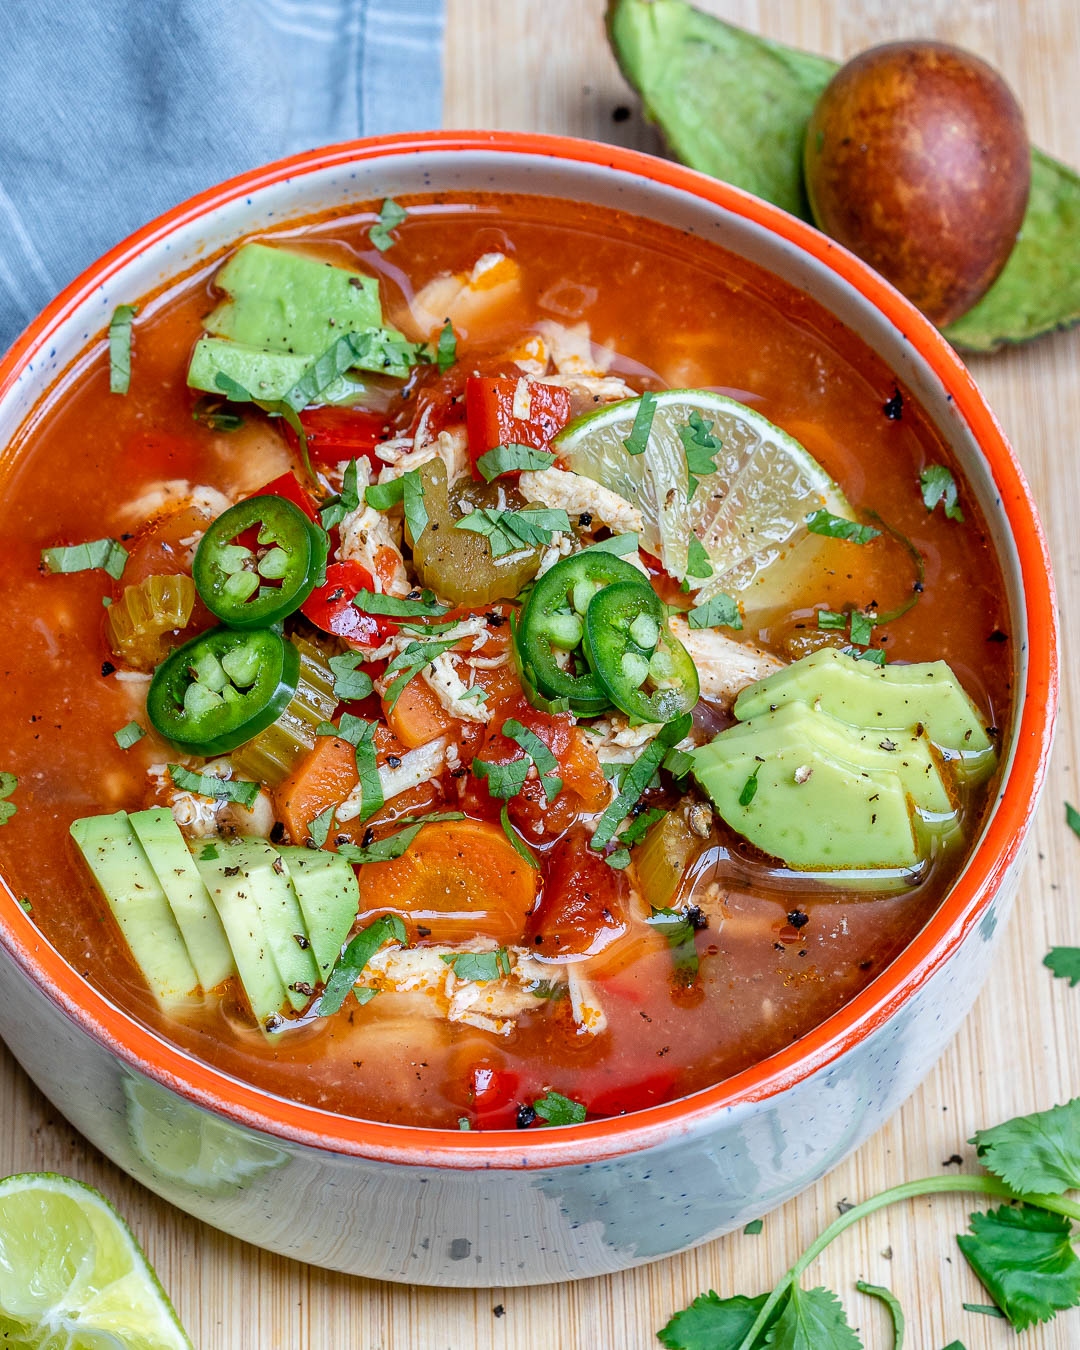 Crockpot Chicken Lime Soup For Clean Eating Is Delicious Clean